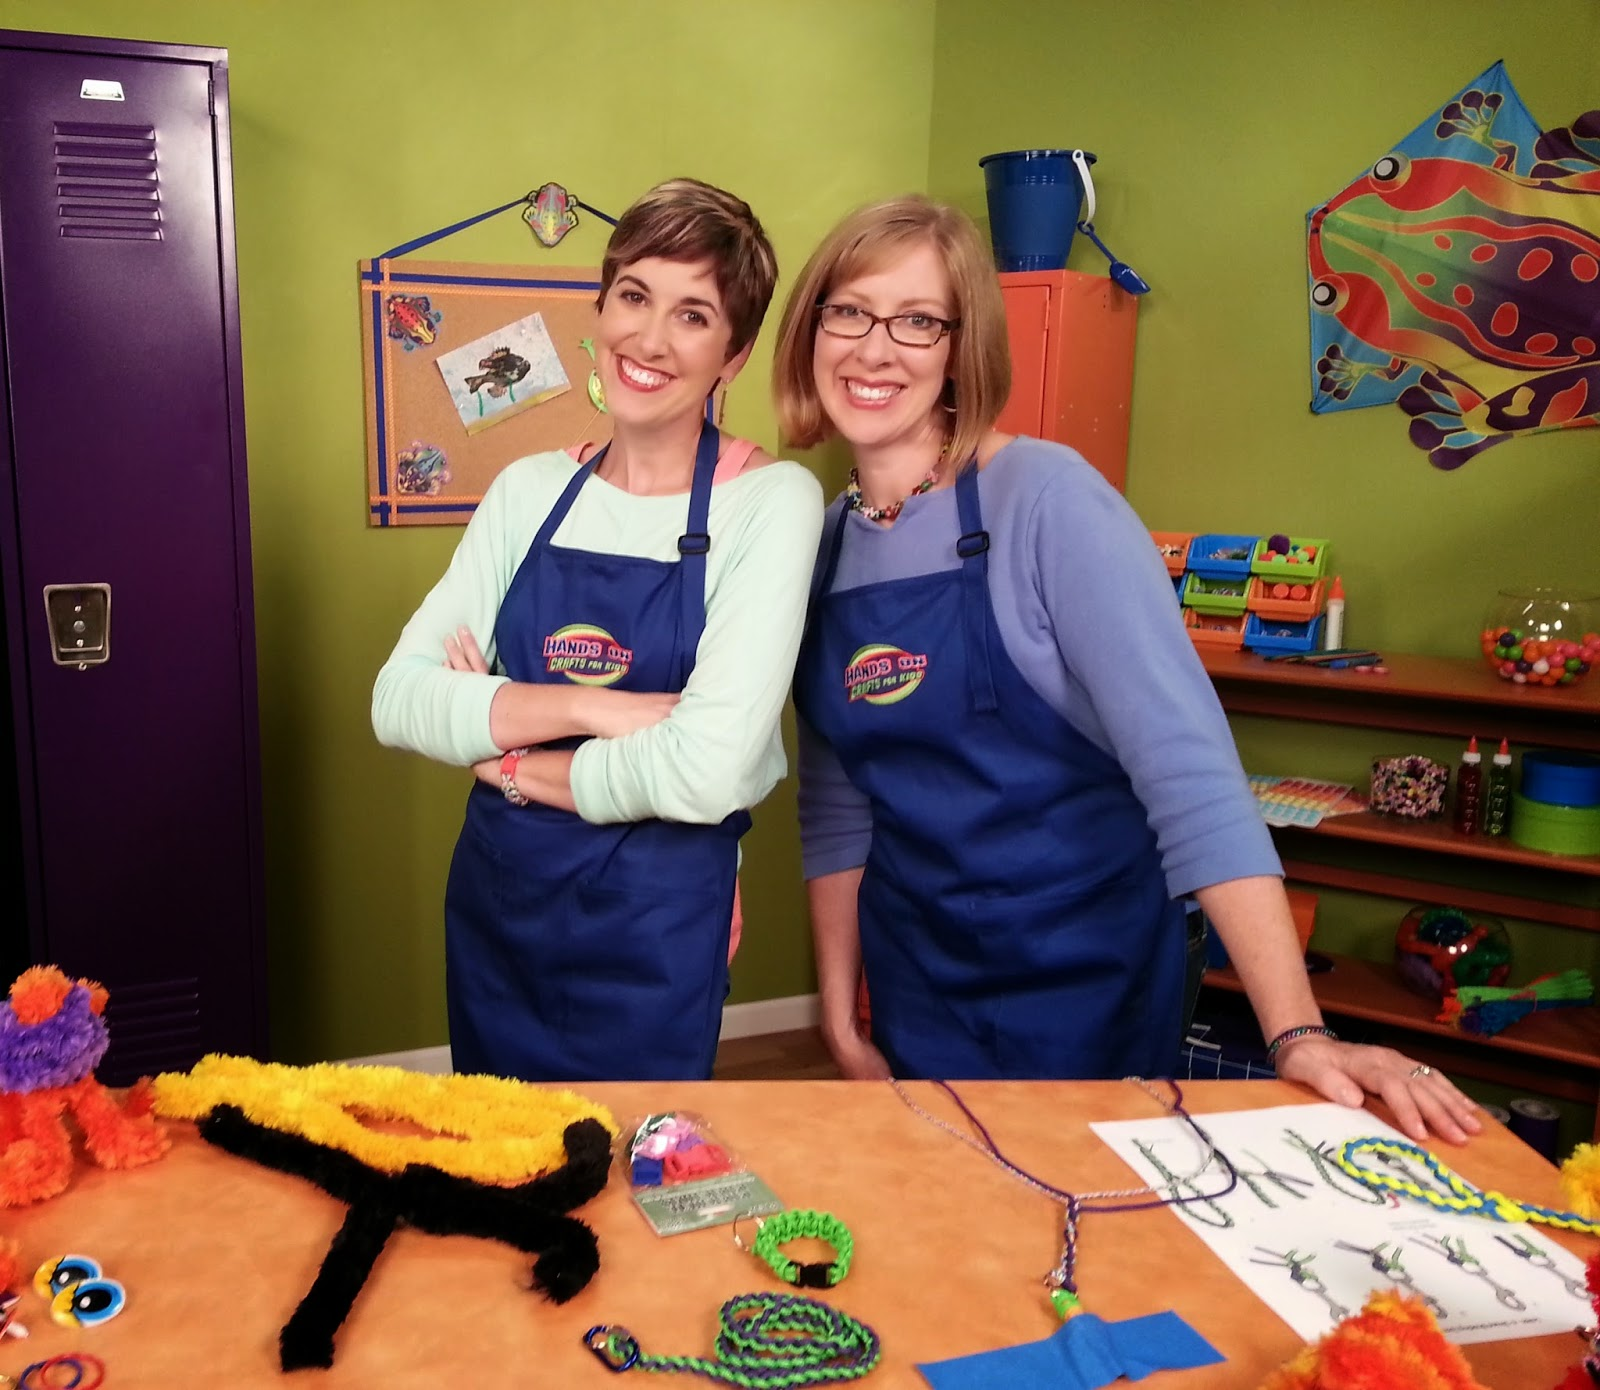 Candie Cooper and Katie Hacker. Photo courtesy of Hands On Crafts For Kids.